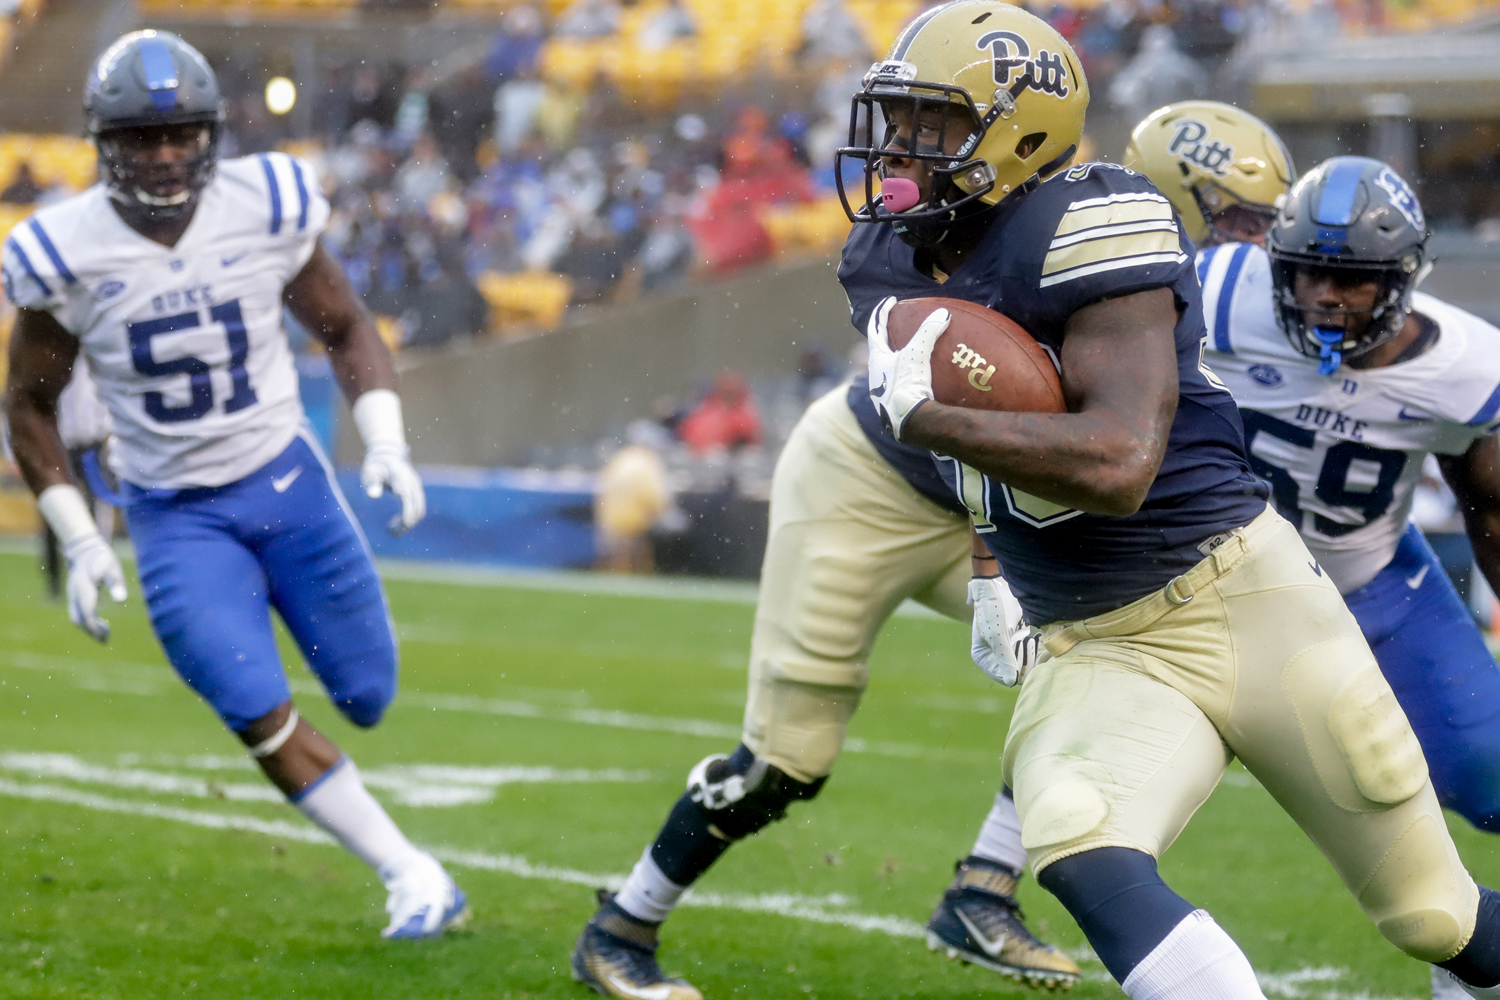 Senior running back Qadree Ollison (30) carries the ball at Pitt's 54-45 victory over Duke on Saturday.